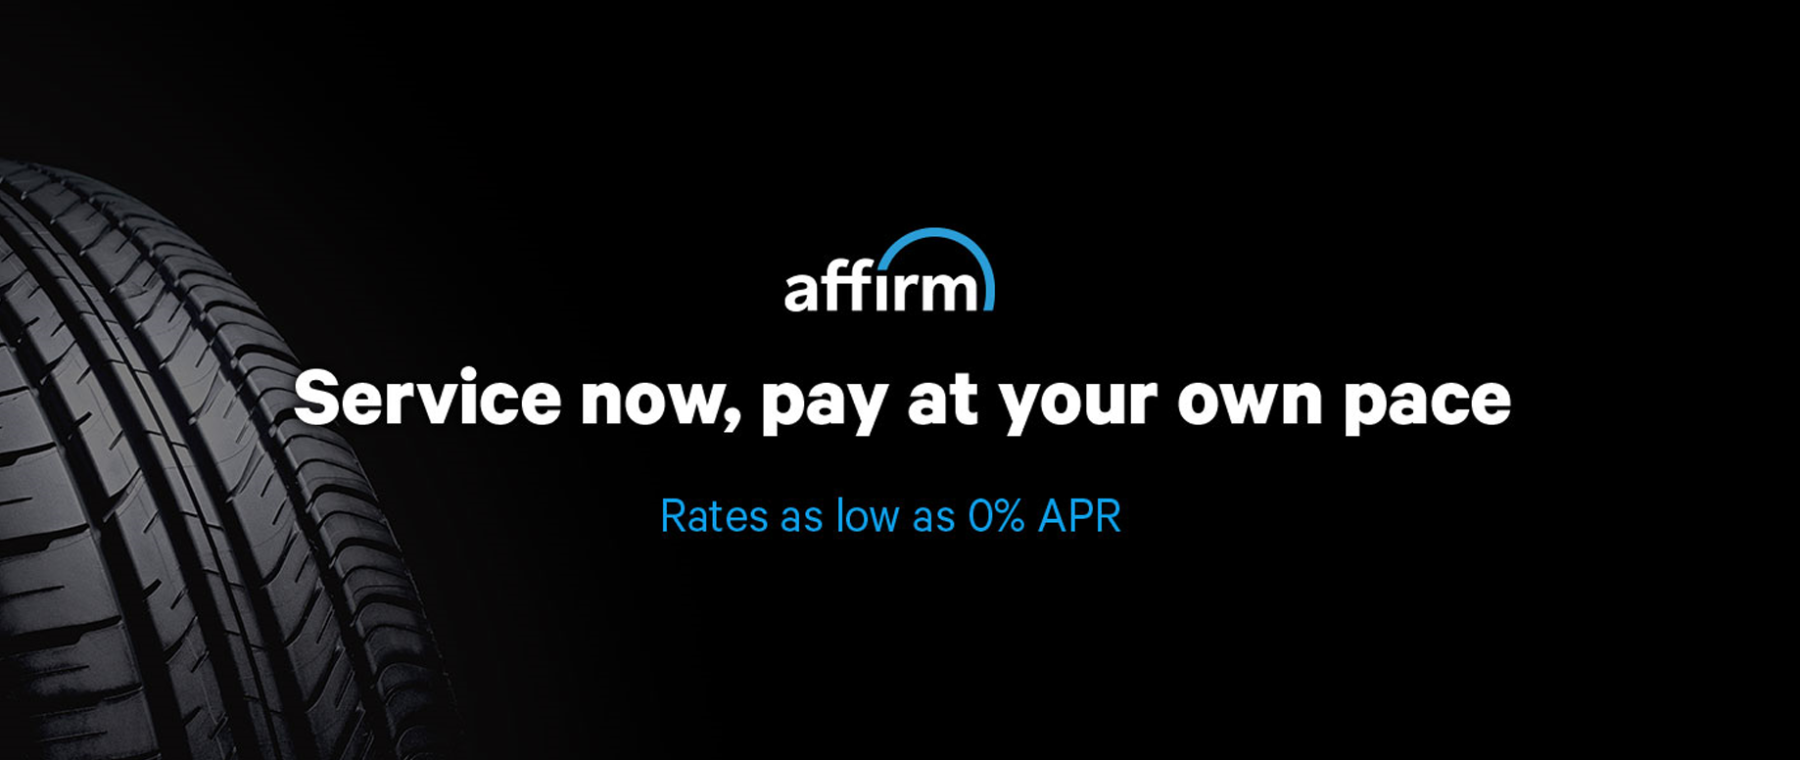 Affirm payment options at Otto's MINI for Service.